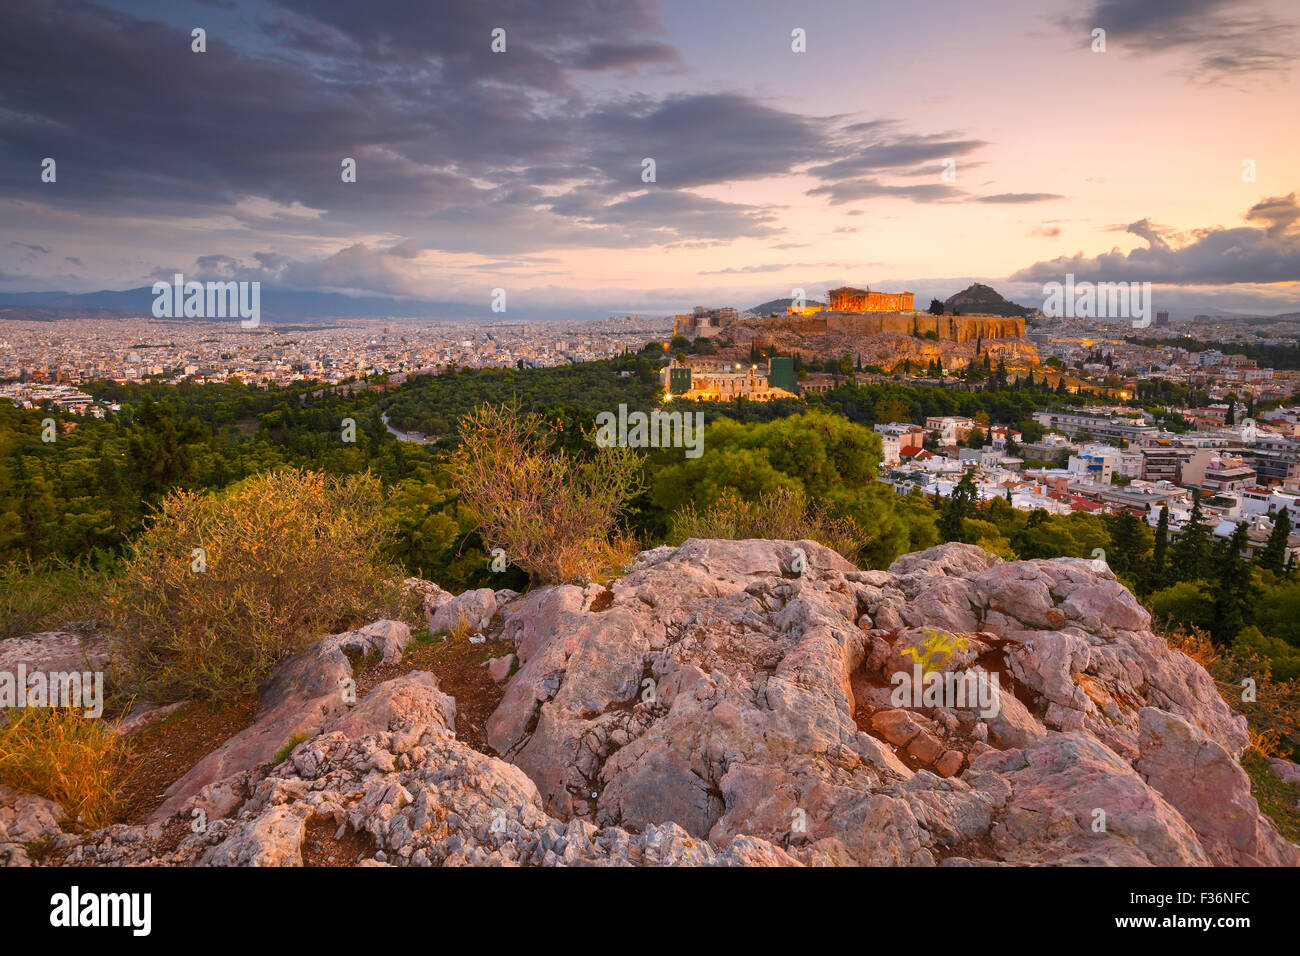 Morning view of Acropolis from Filopappou hill in centre of Athens. Stock Photo